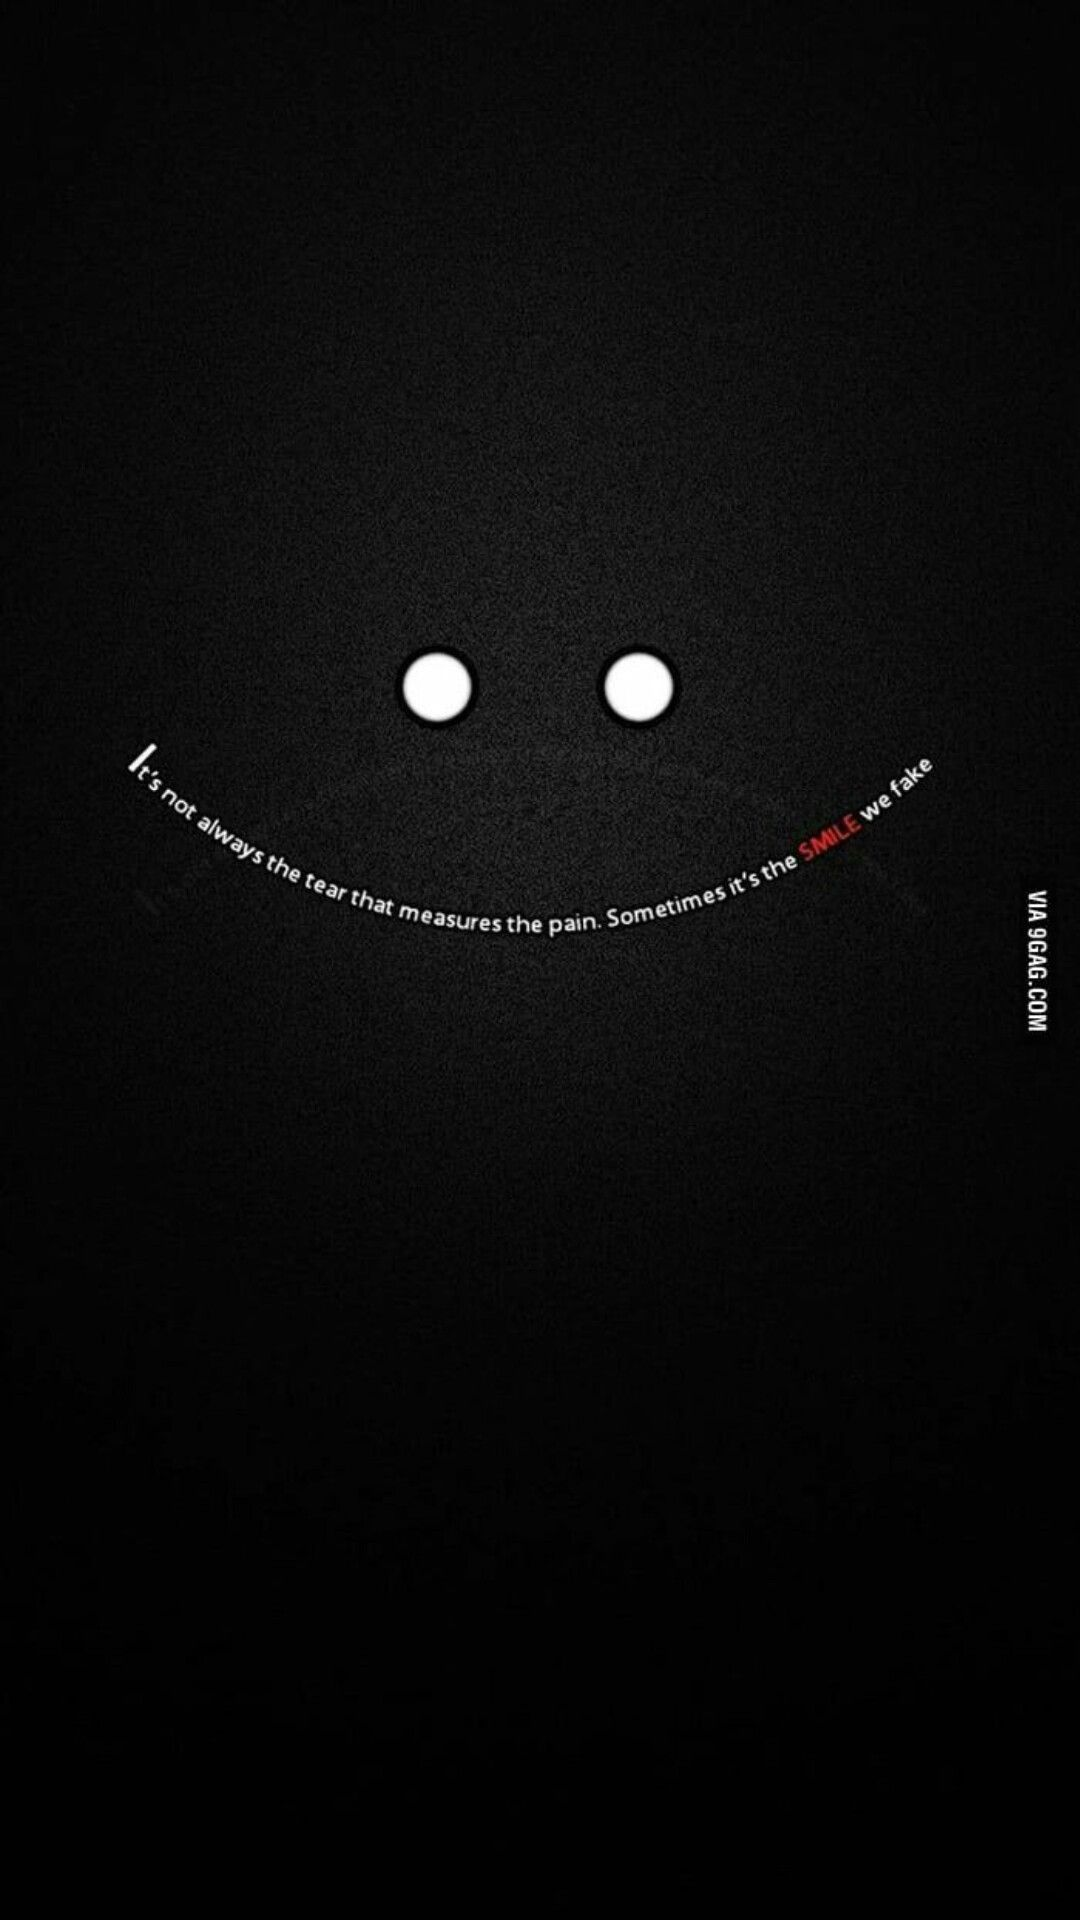 Pin on emotions are not hidden